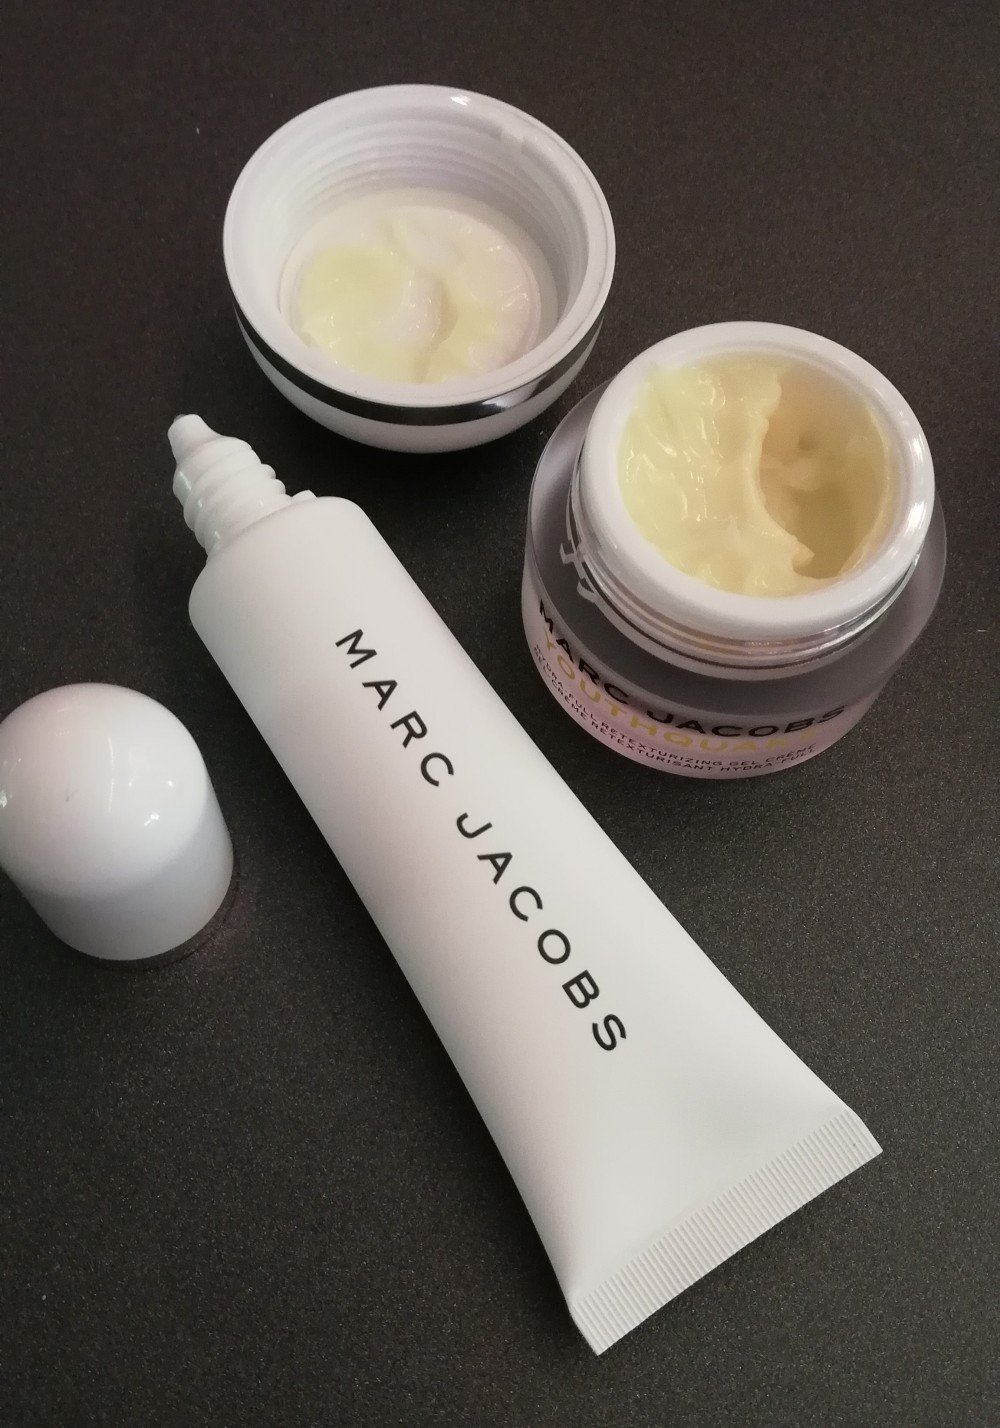 Marc Jacobs Beauty Youthquake Face Primer